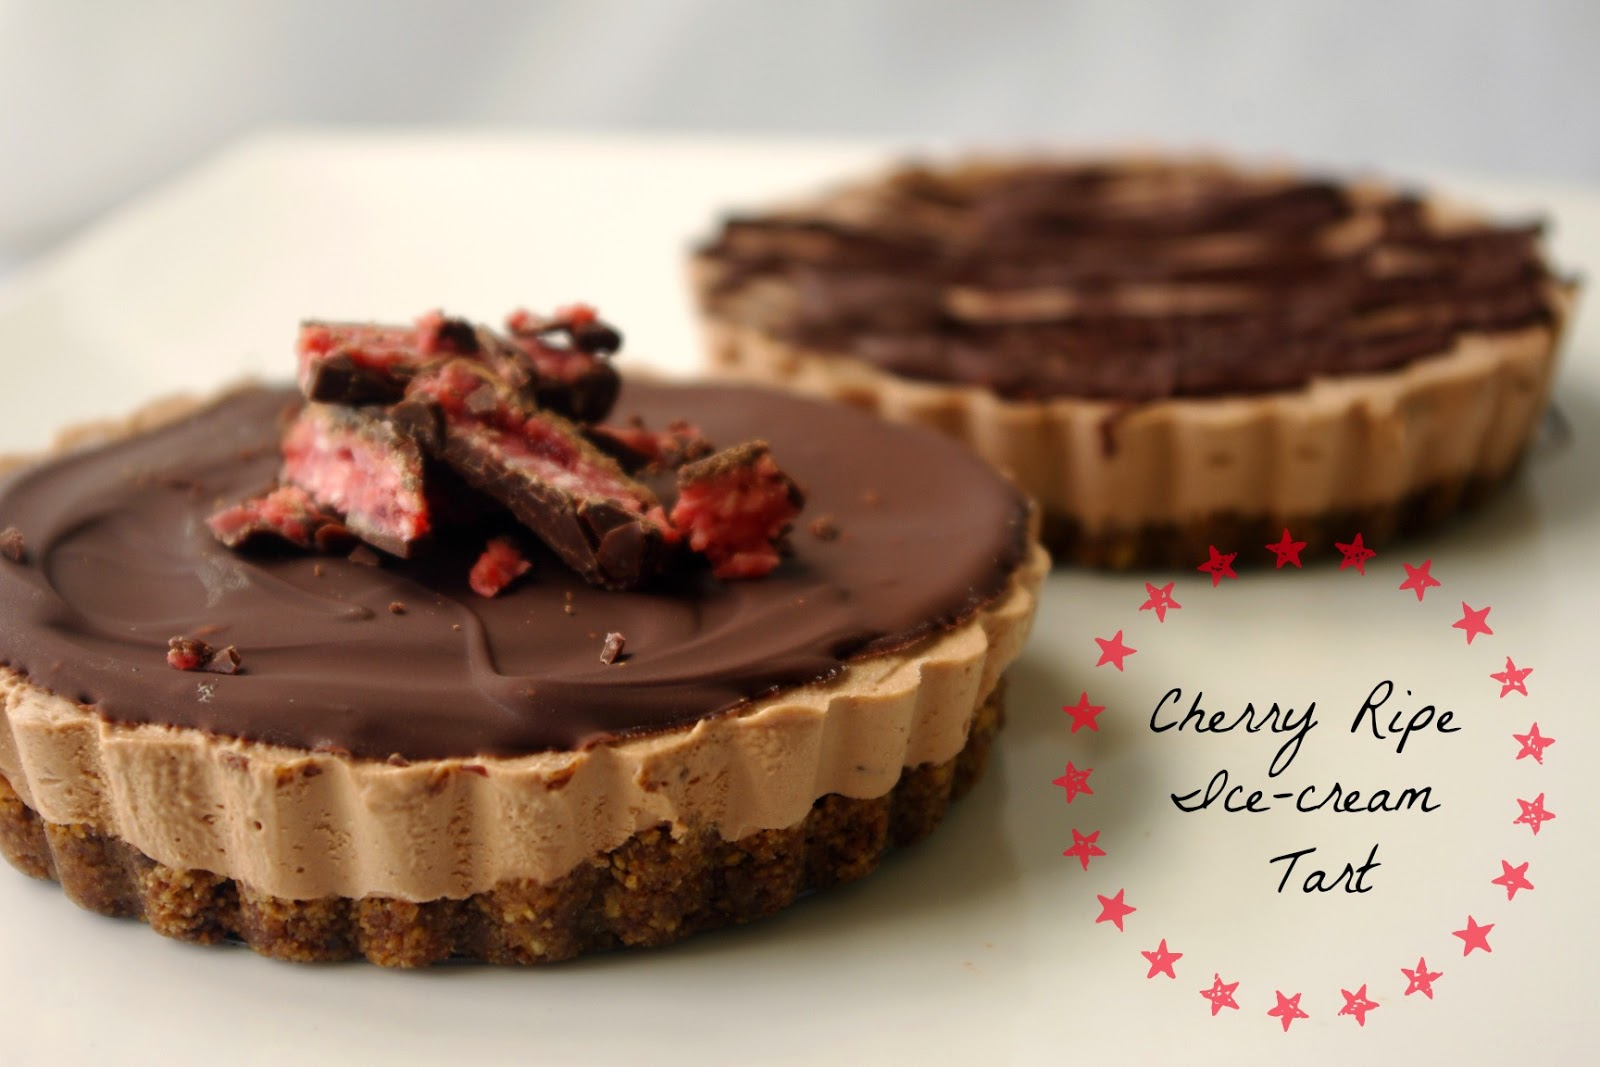 Cherry-ripe-icecream-tart-using-two-ingredient-no-churn-icecream